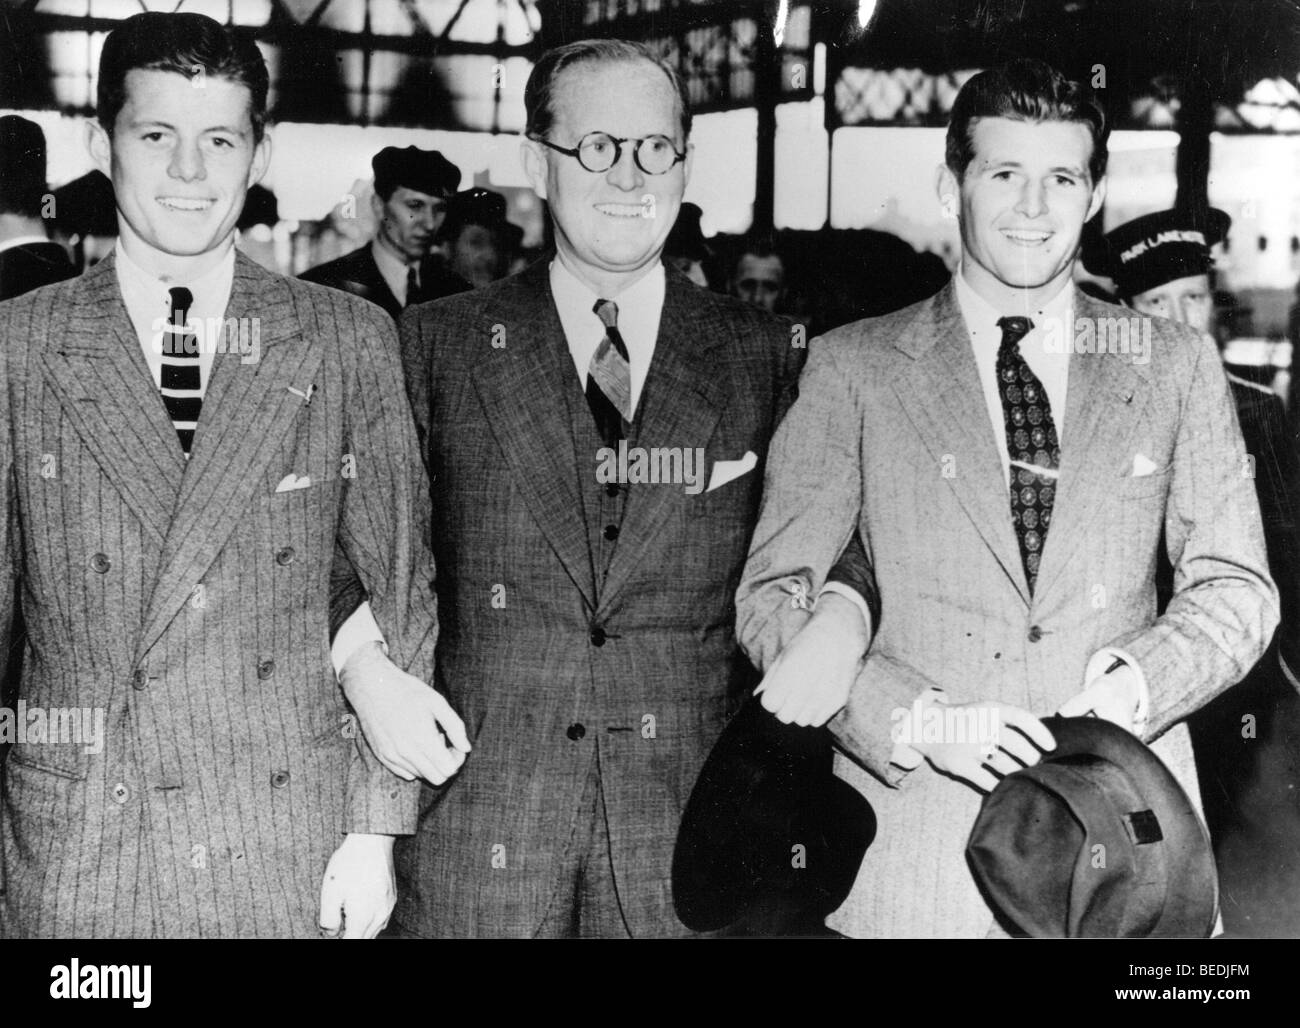 From left, John Kennedy, Joseph Kennedy Sr., Joseph Kennedy Jr. smile with linked arms. - Stock Image